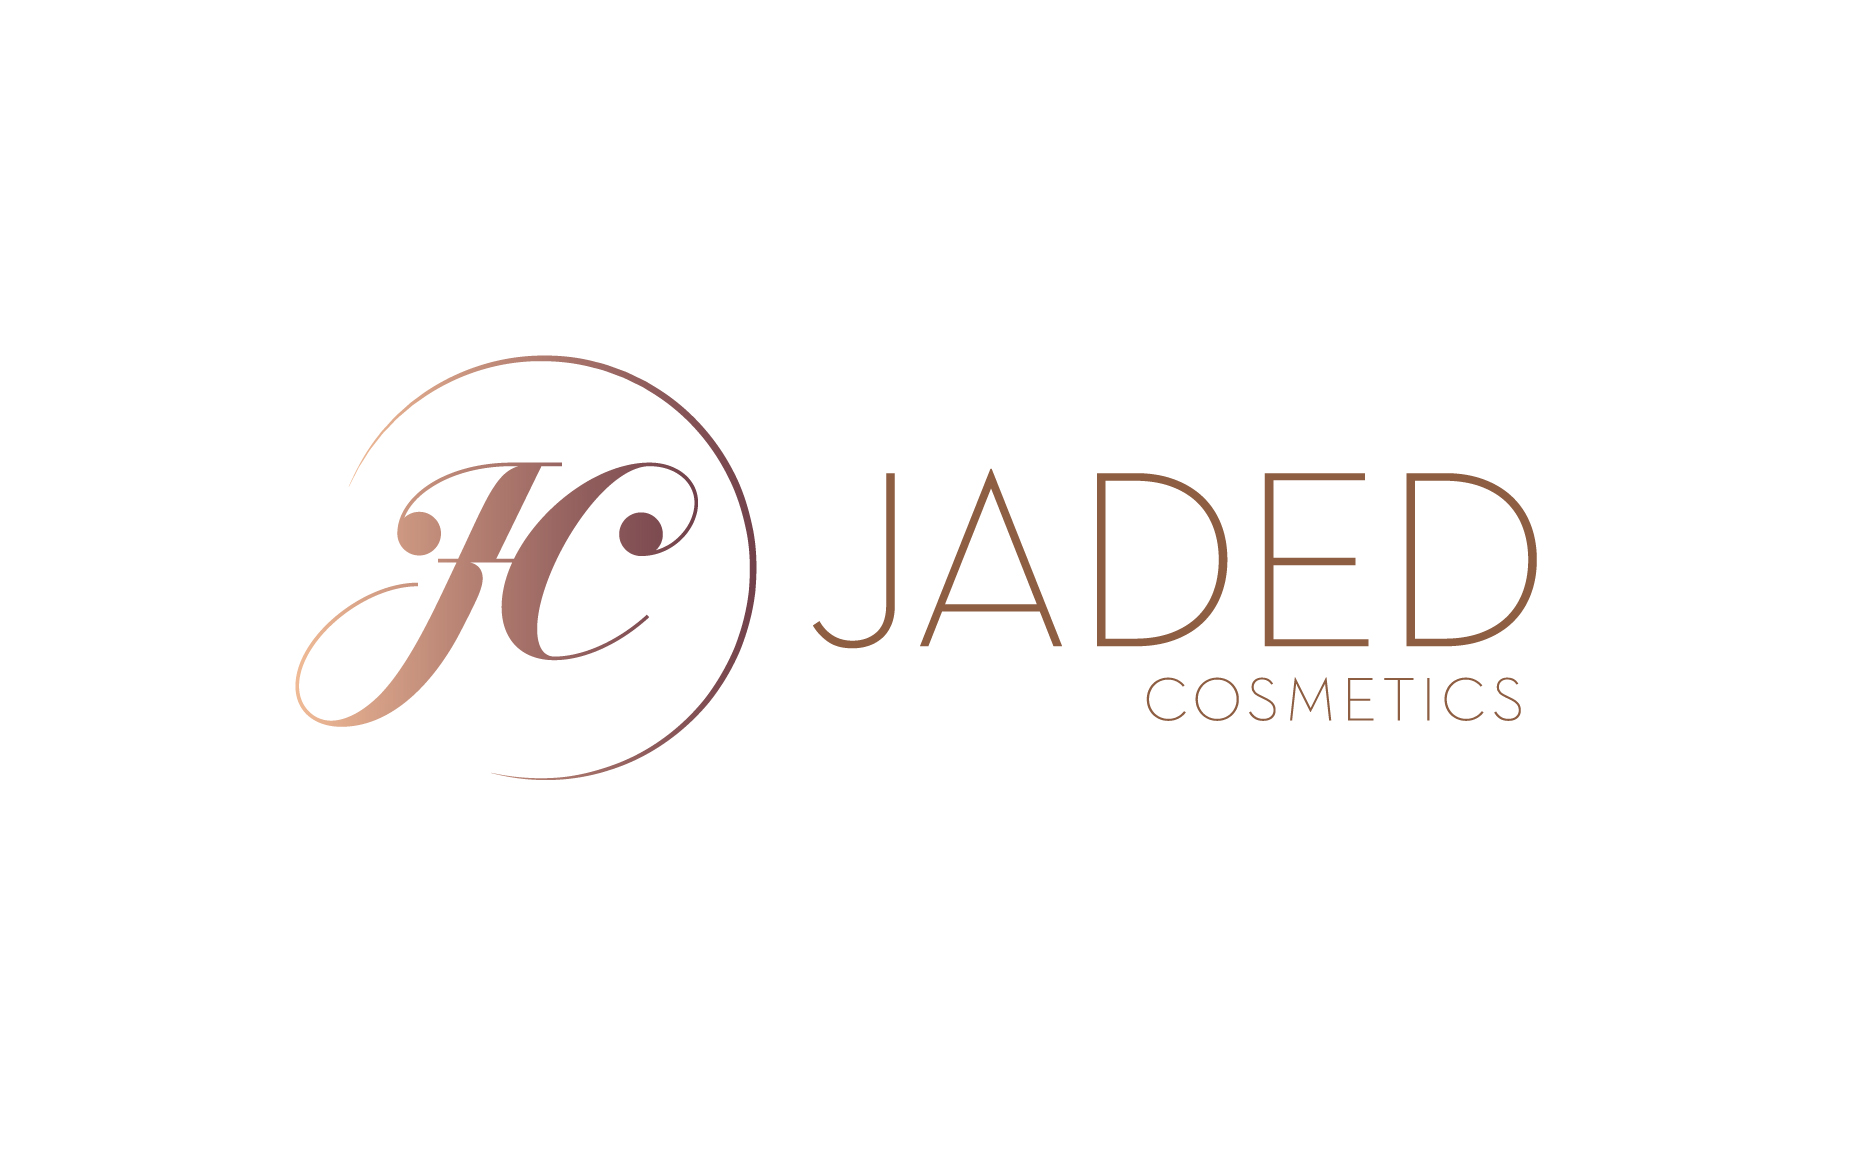 Jaded Cosmetics